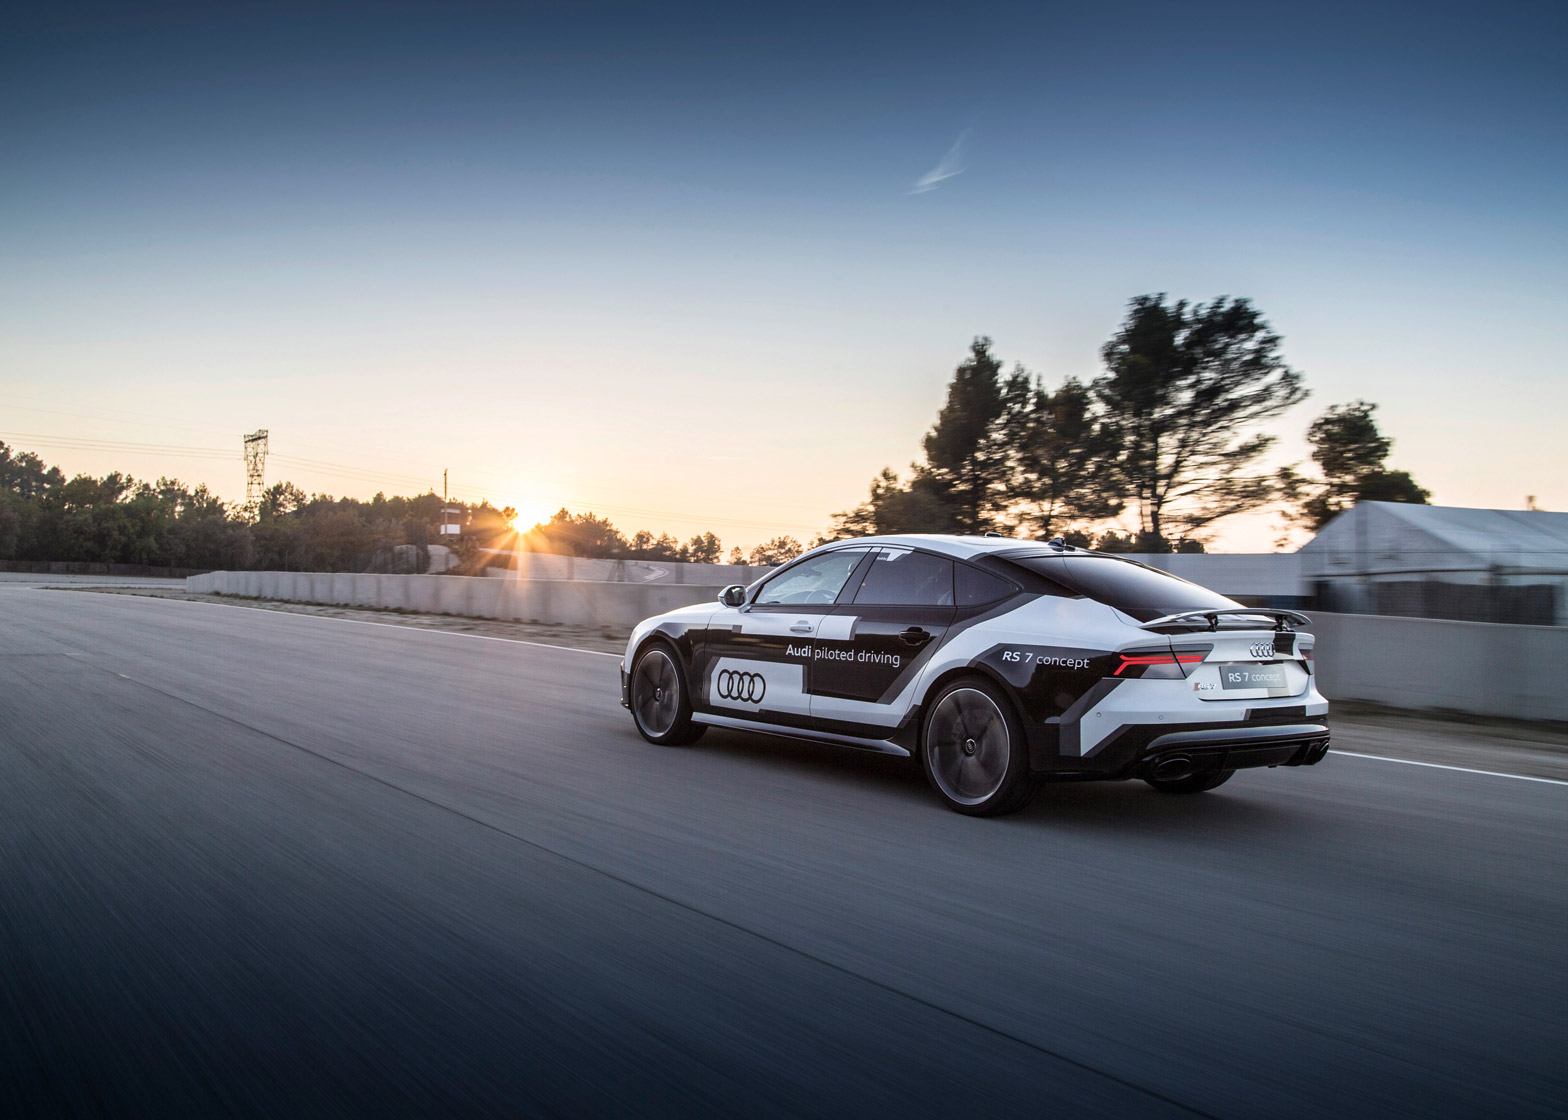 The Audi RS 7 can be equipped with the company's piloted driving concept